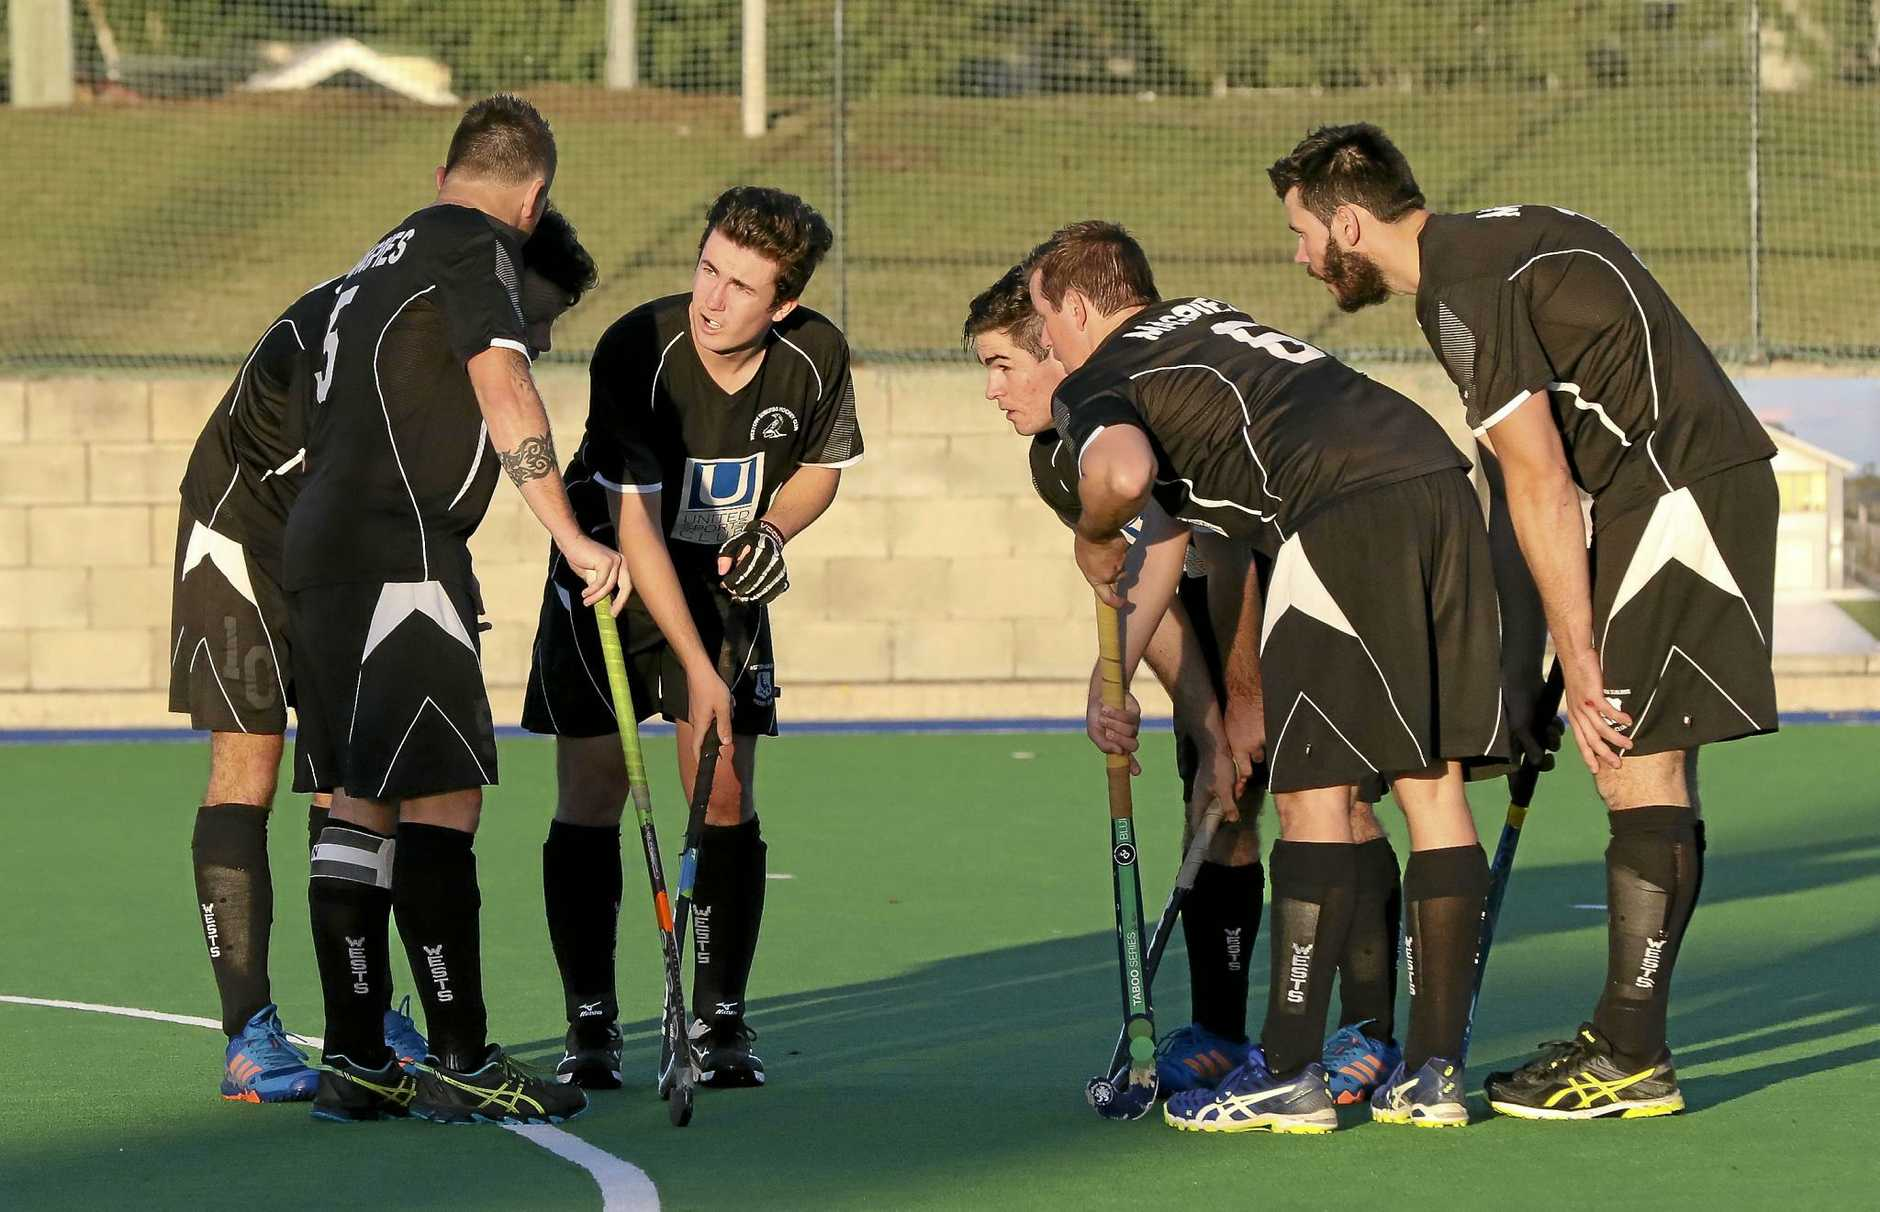 TALKING TACTICS: Wests' A Grade players plot their next move during a recent game at the Ipswich Hockey Complex.